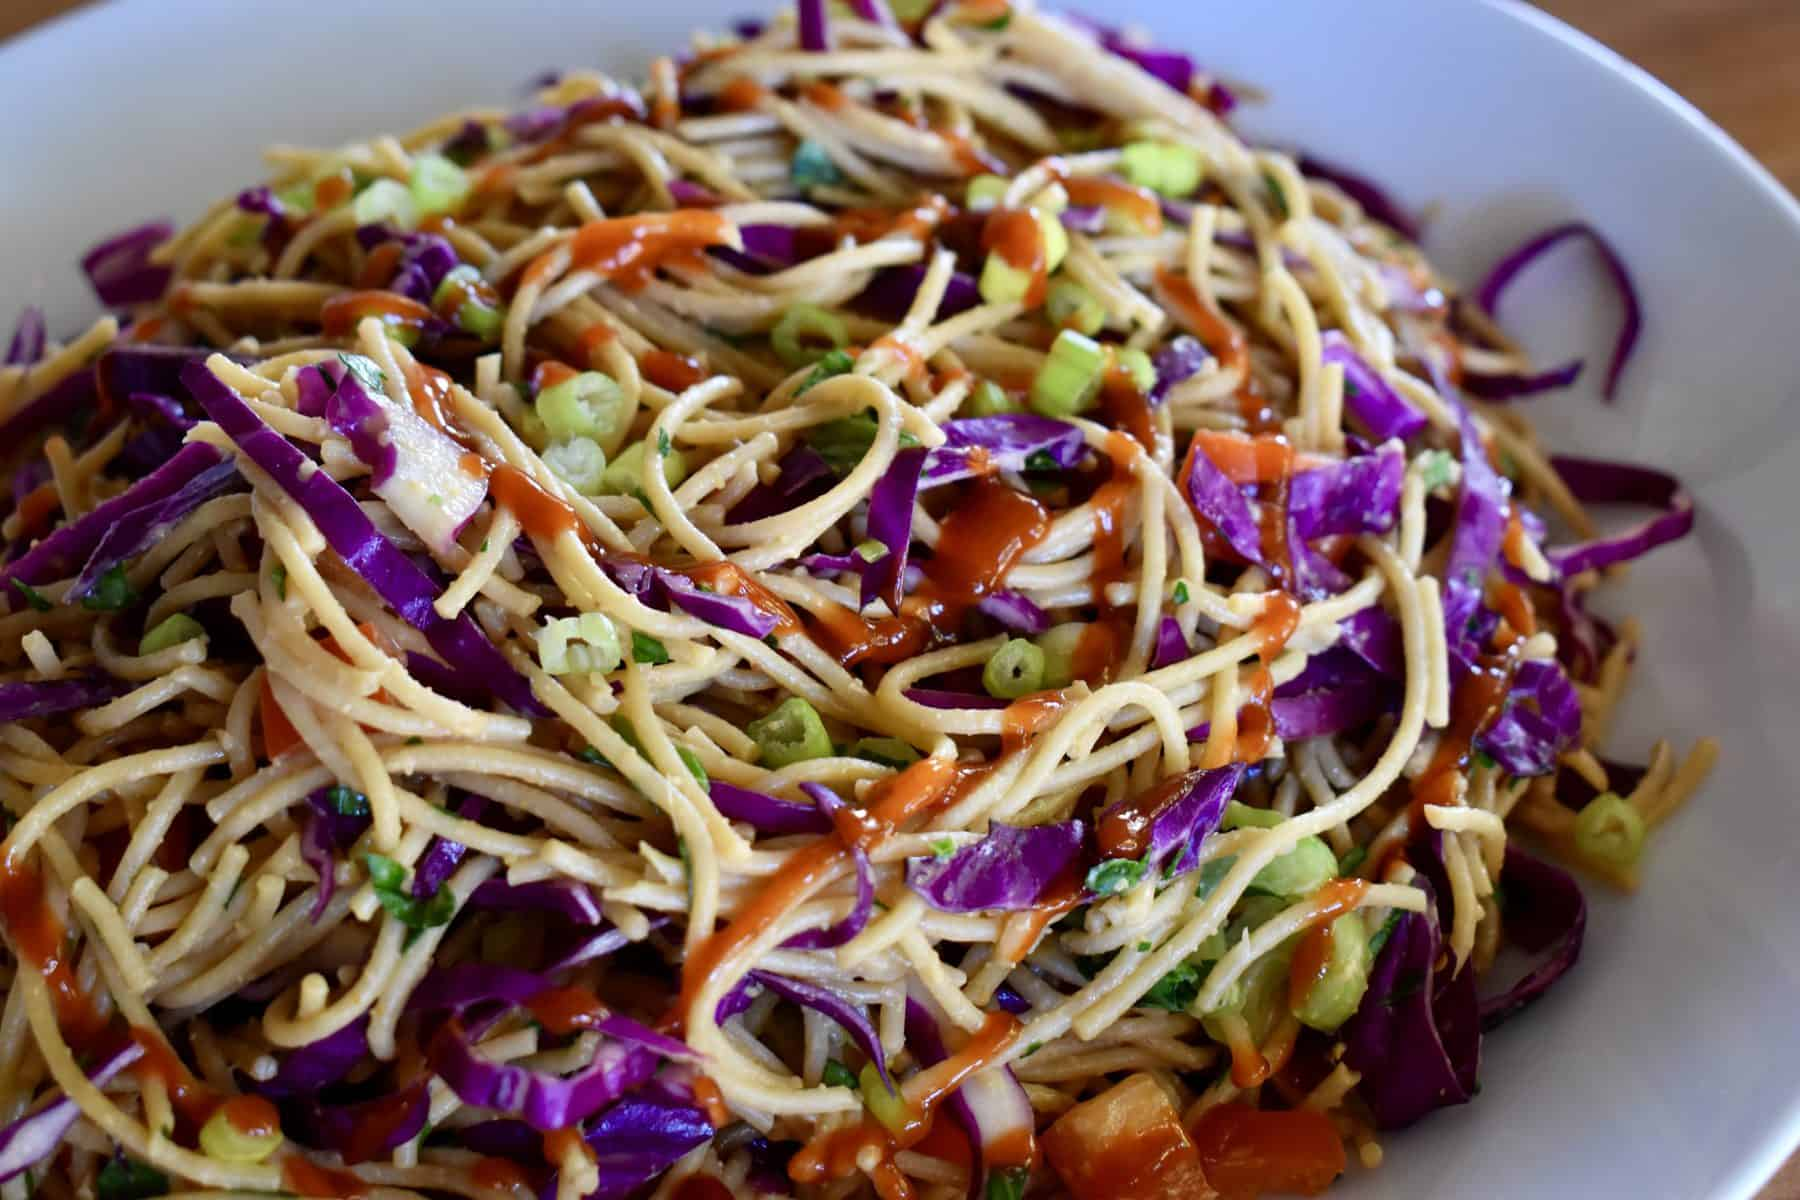 Asian noodle salad in a white bowl with siracha drizzled on top.